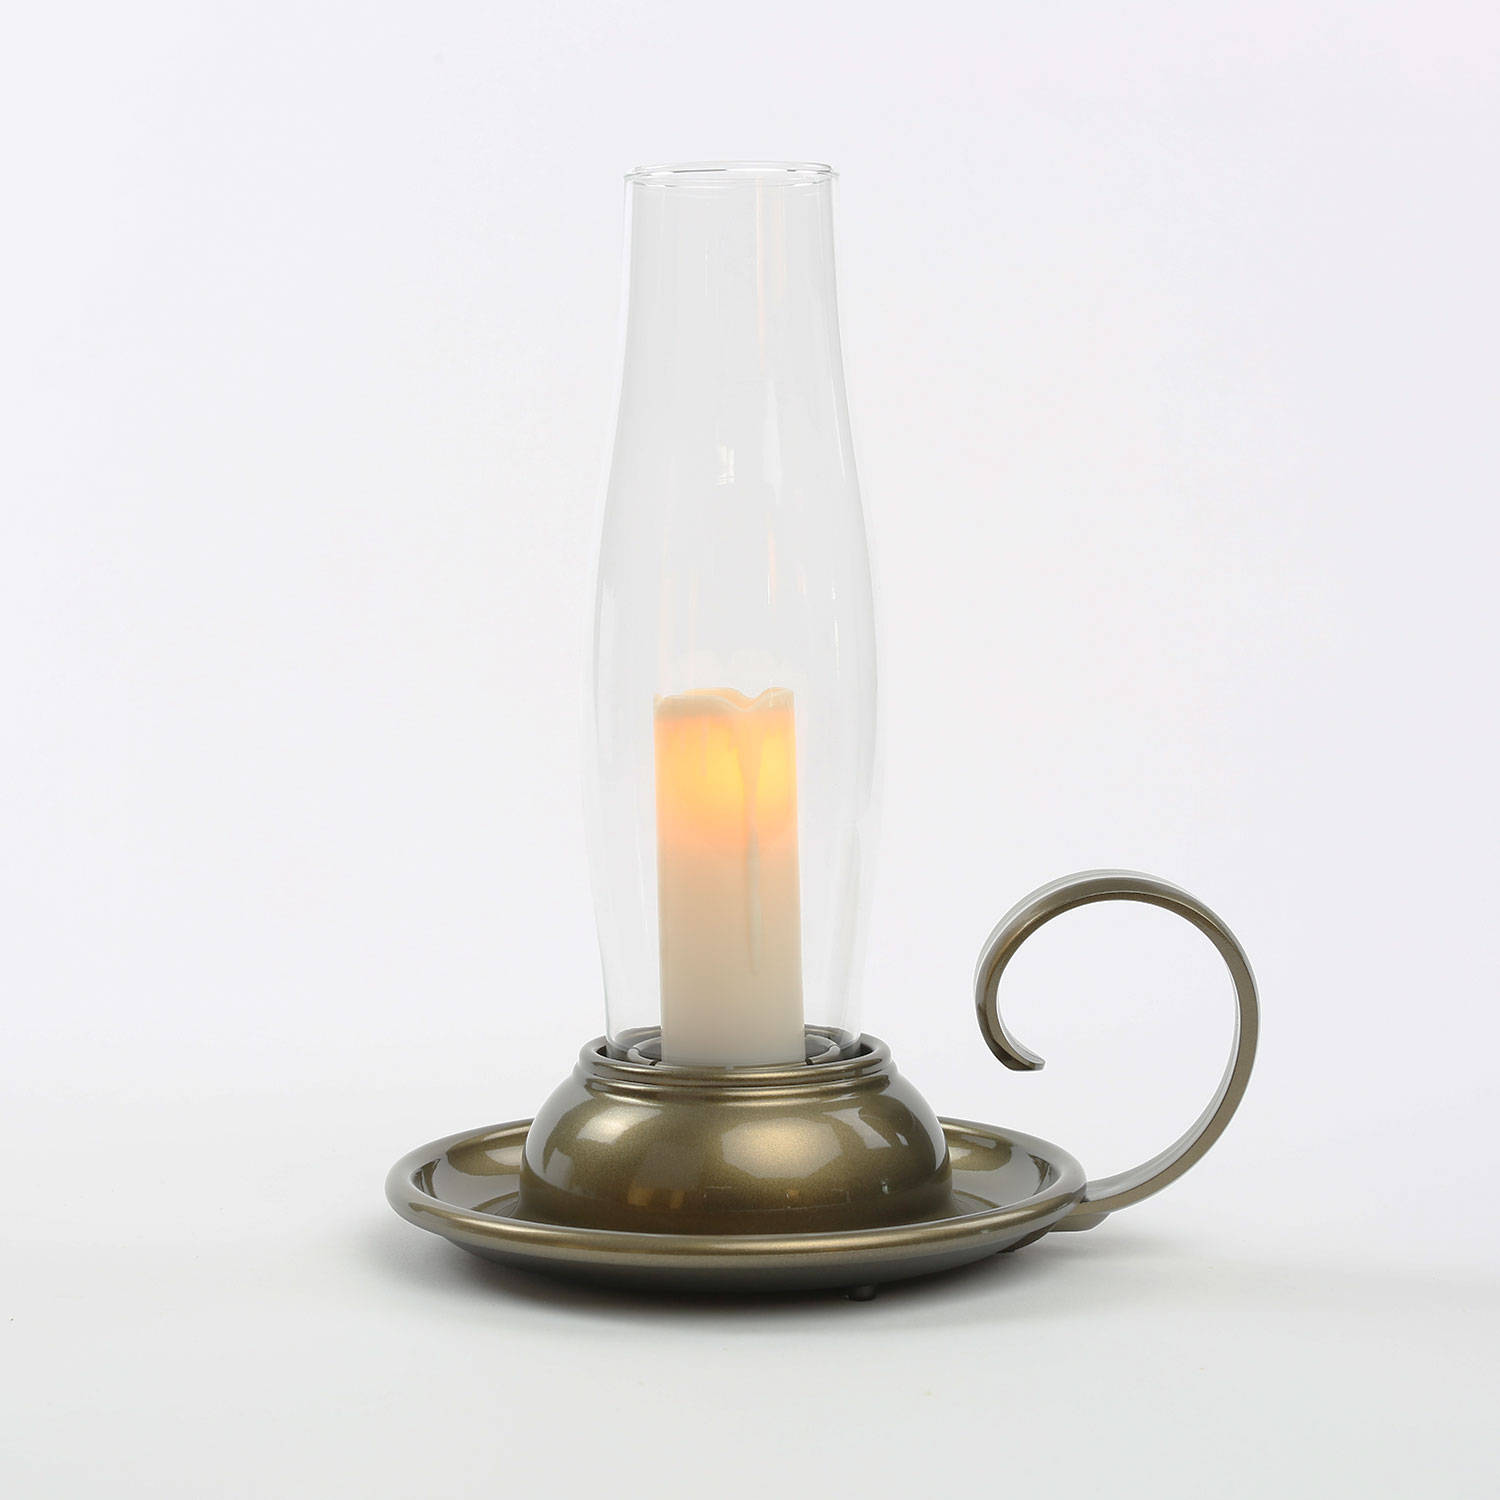 Christmas candles for windows battery operated - Gallery Of Open Image With Battery Operated Window Candles